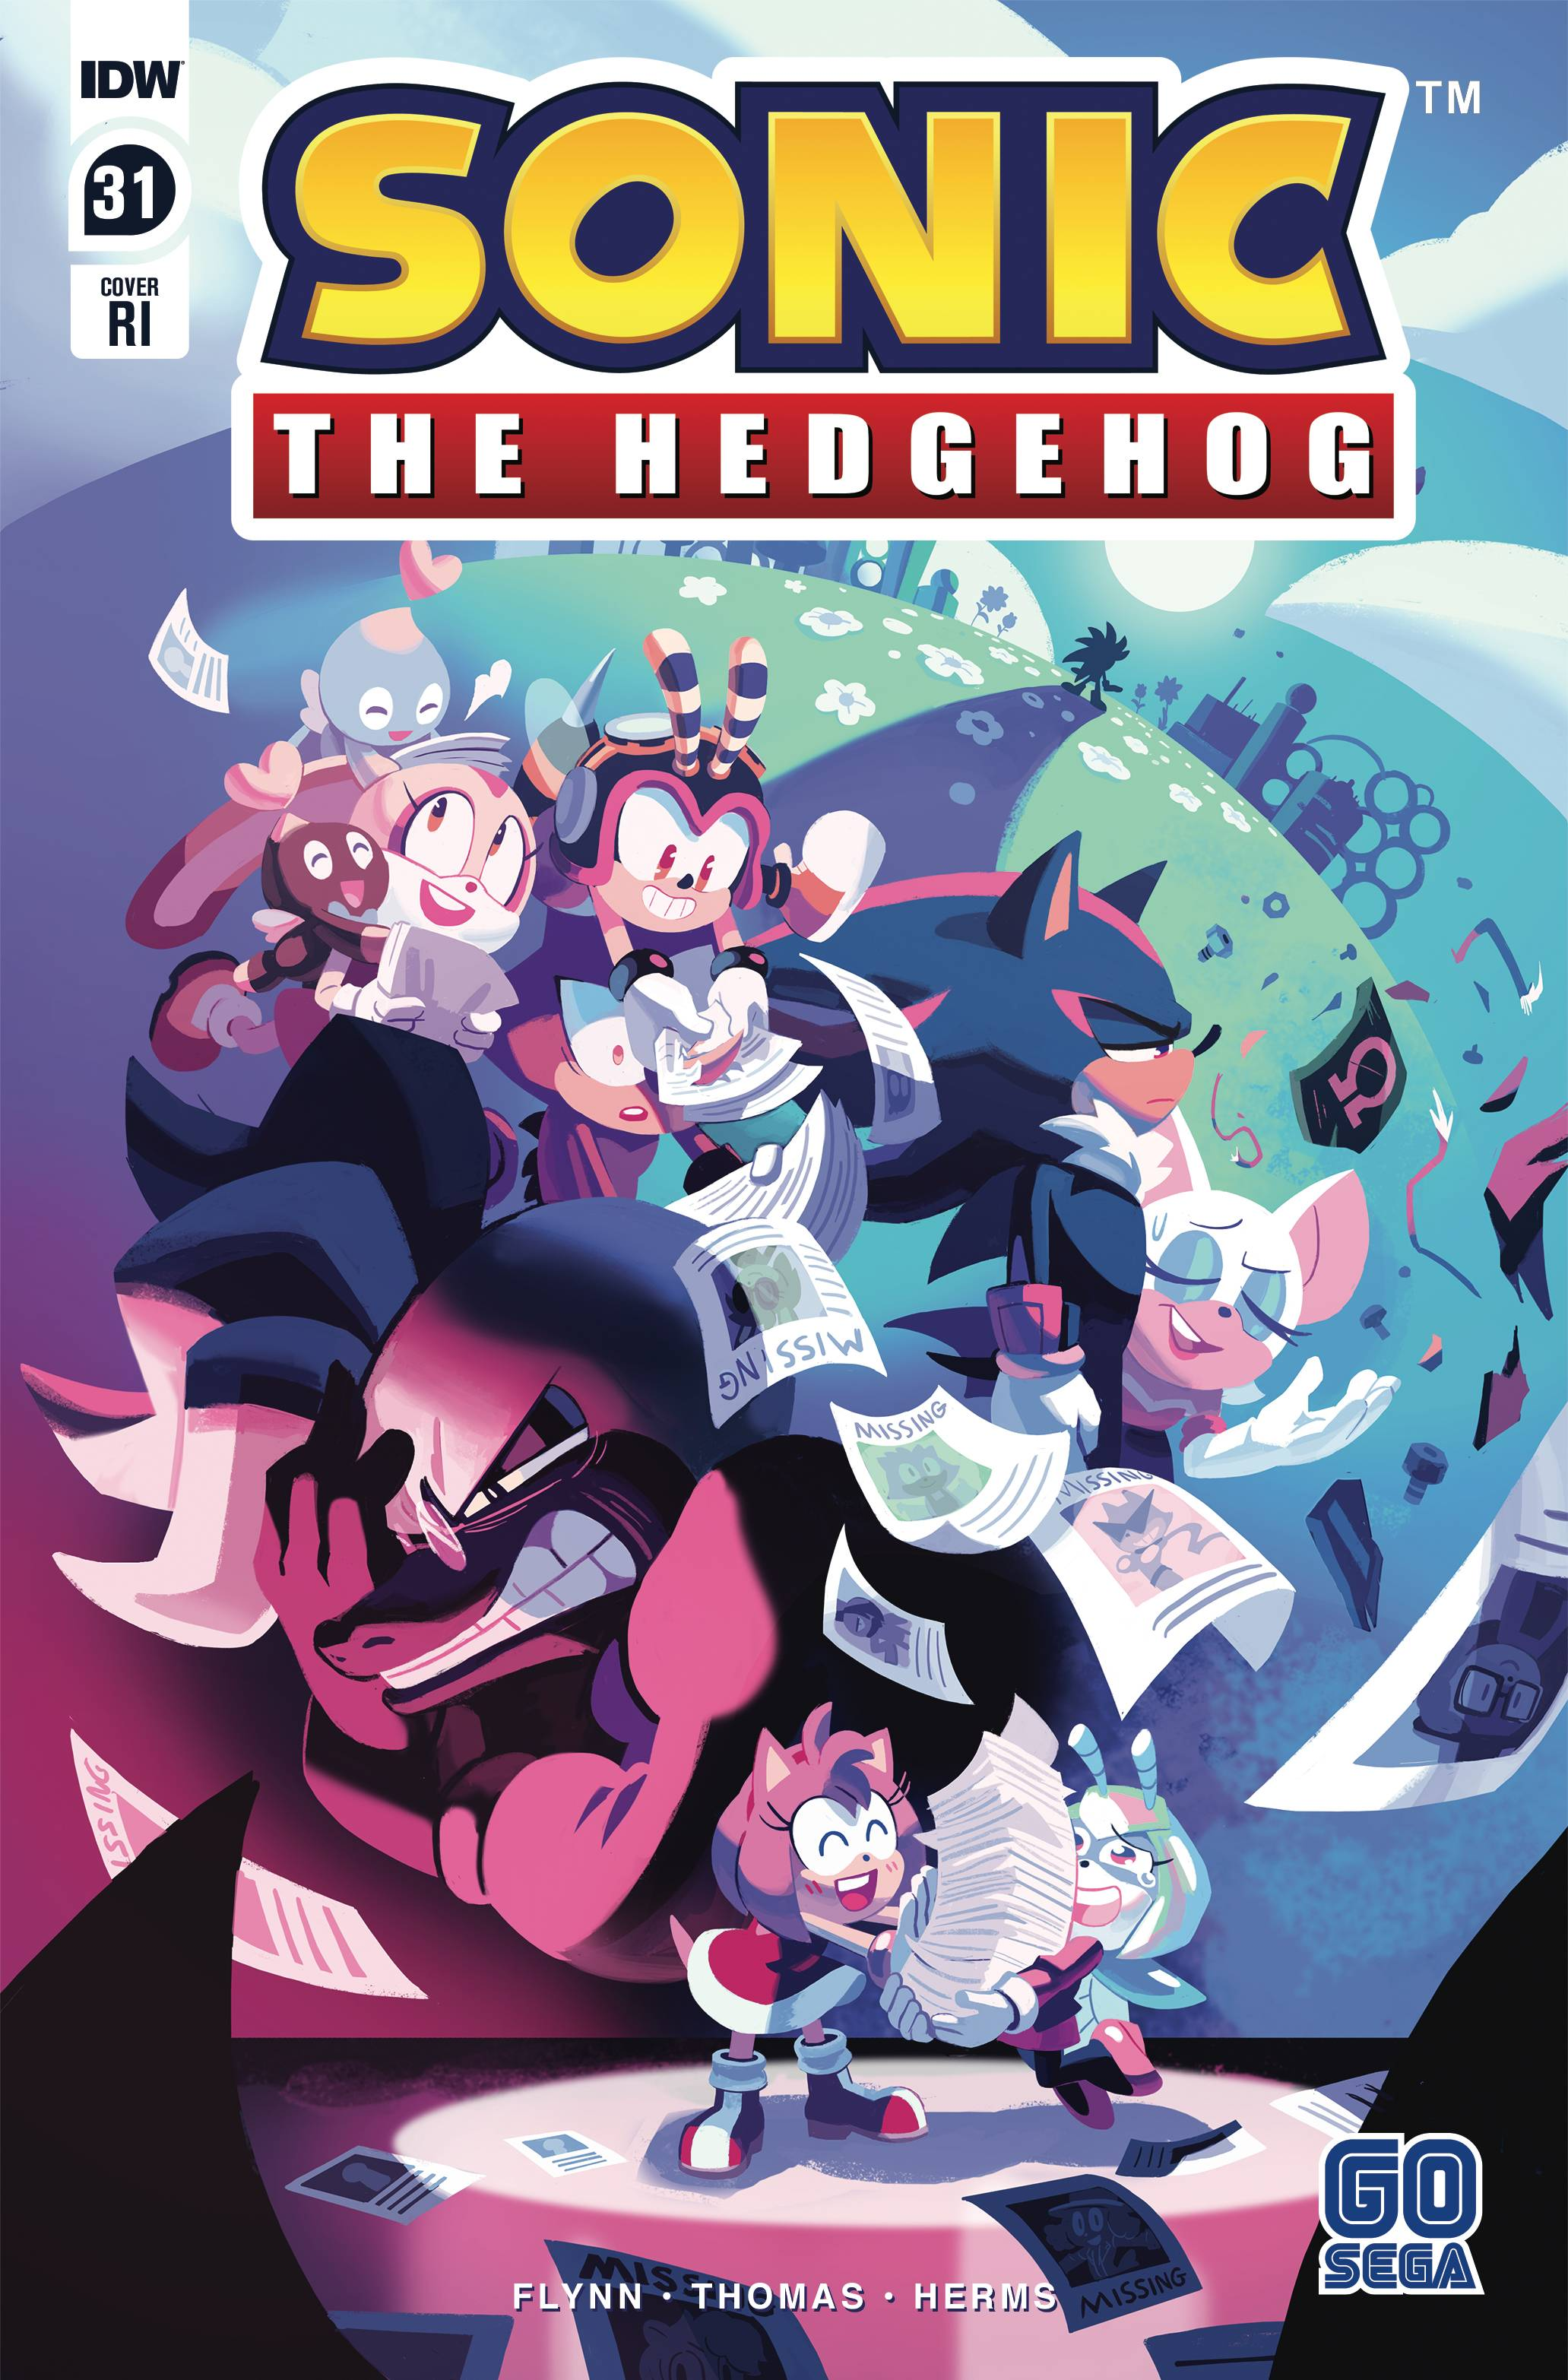 Idw Sonic The Hedgehog Issue 31 Sonic News Network Fandom